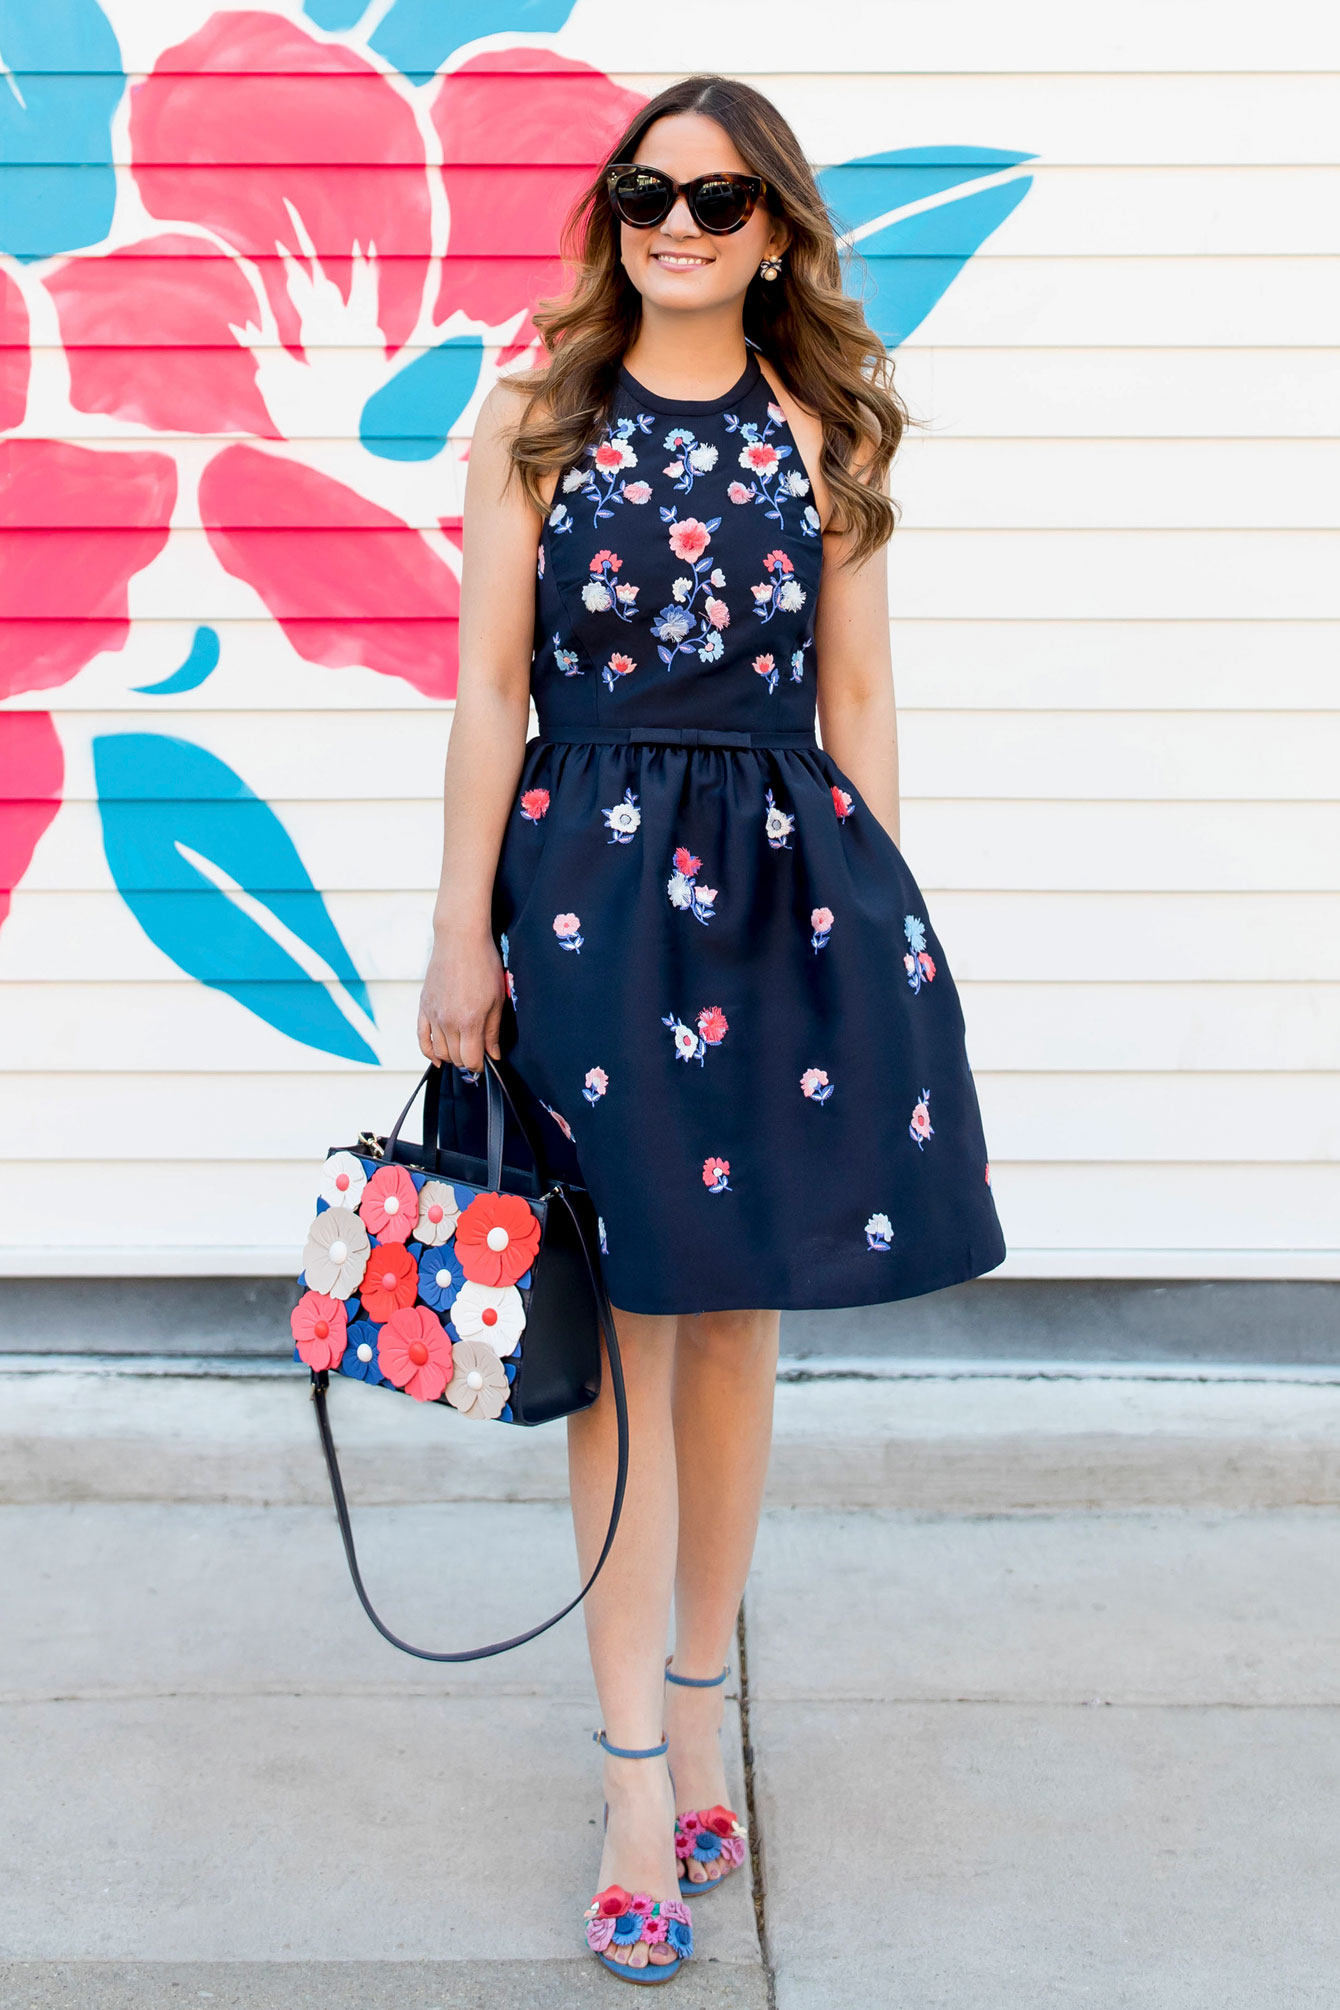 Kate Spade Navy Floral Embroidered Fit Flare Dress And Sam Bag